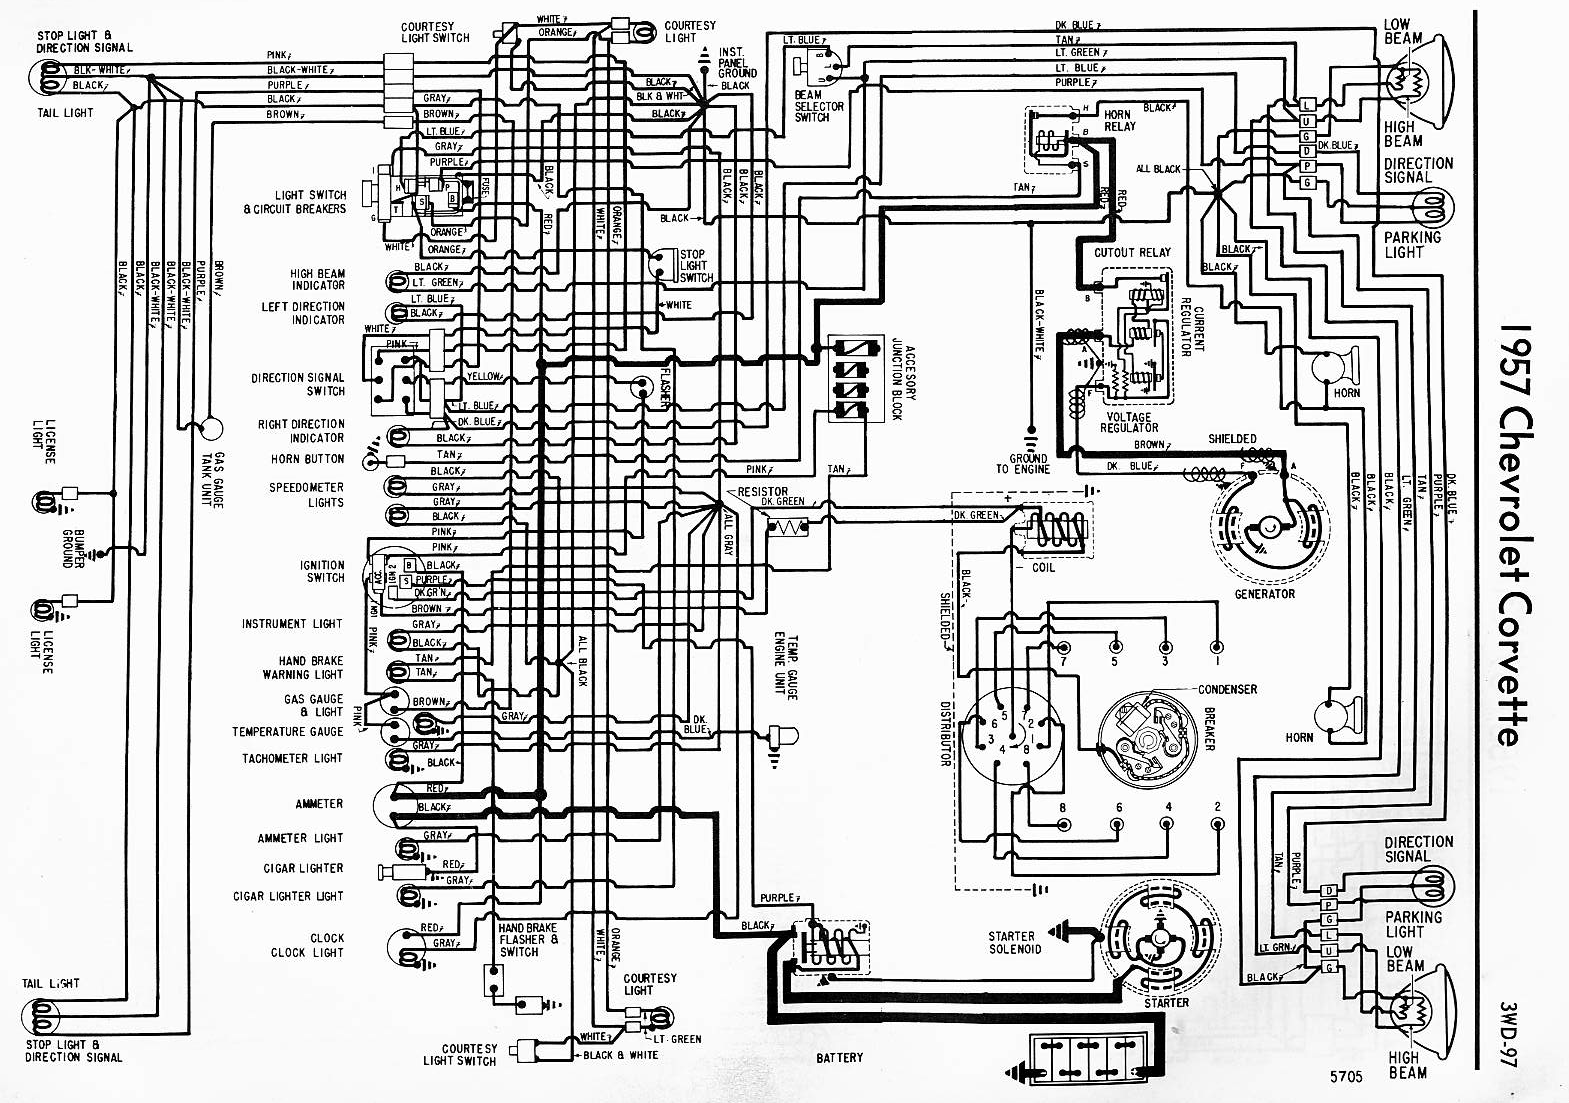 2003 Pontiac Wiring Schematic Reinvent Your Diagram G6 Stereo Wire Harness Schematics Bonneville Alternator Pictures U2022 Rh Mapavick Co Uk 2006